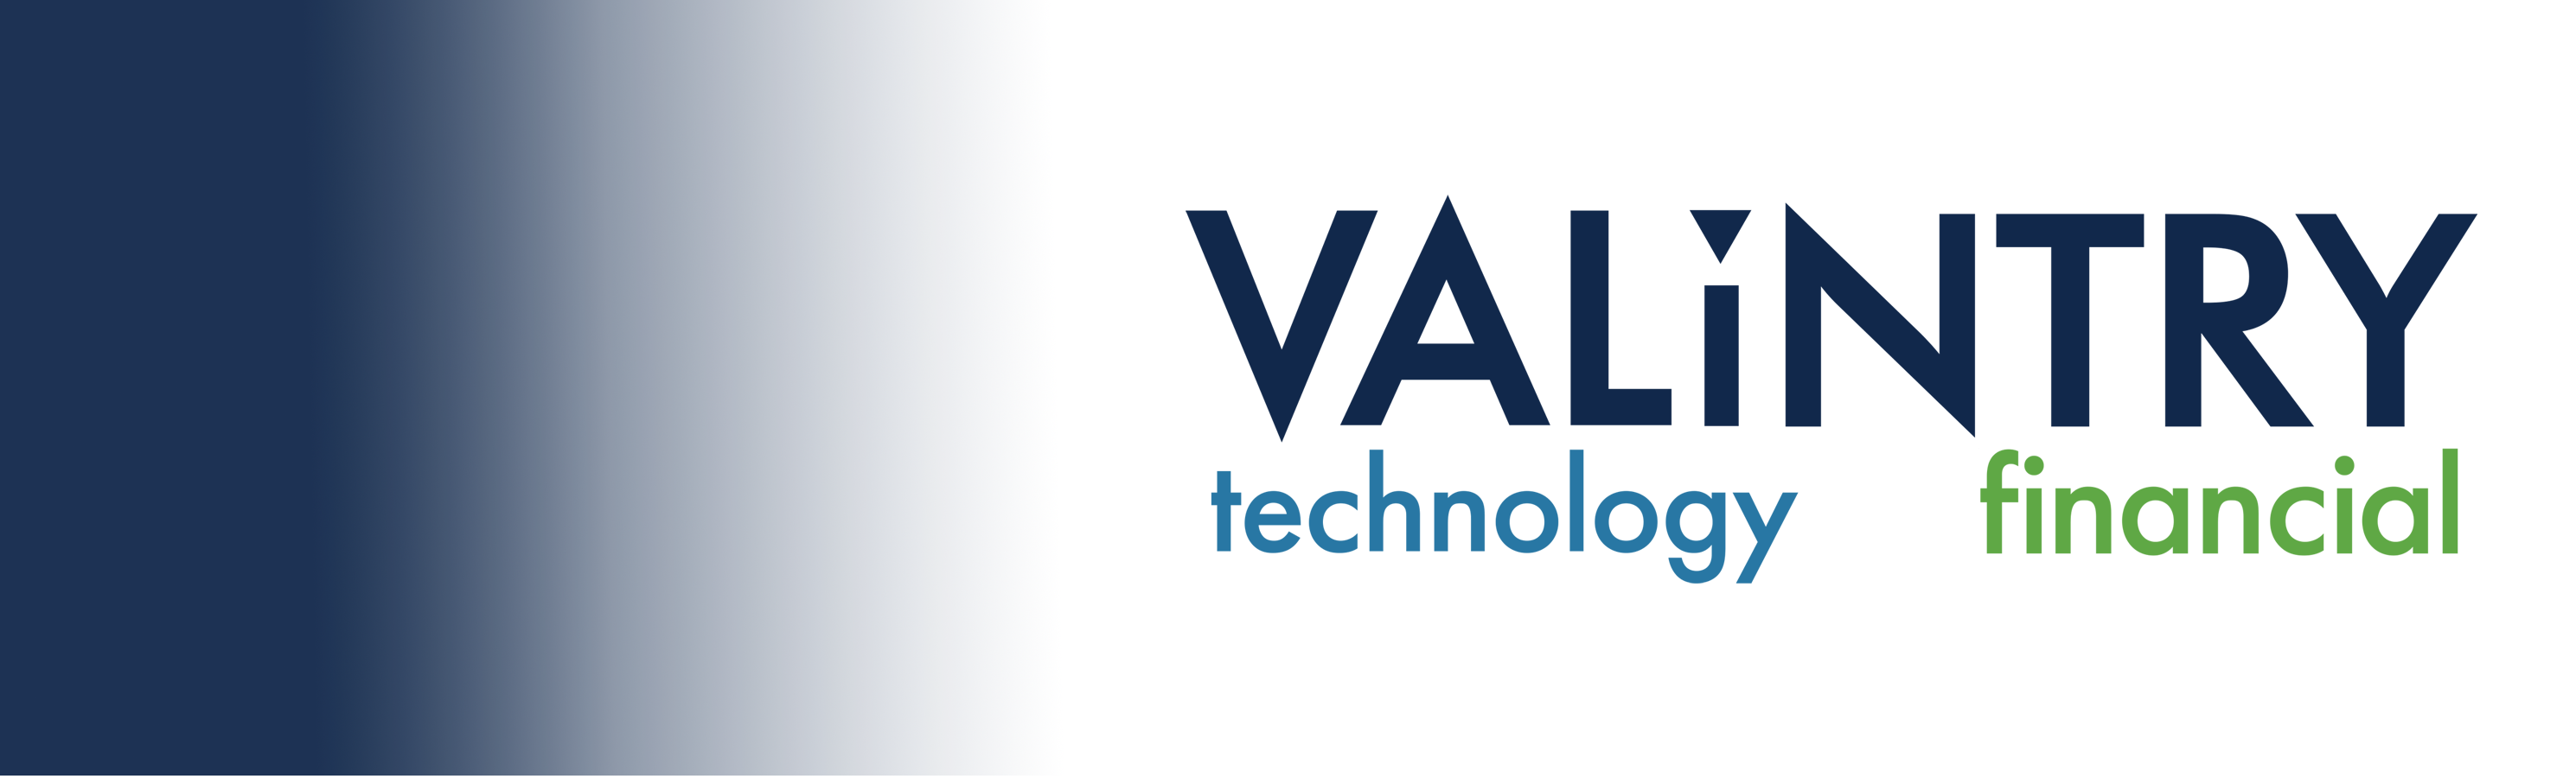 VALiNTRY technology and financial staffing logo